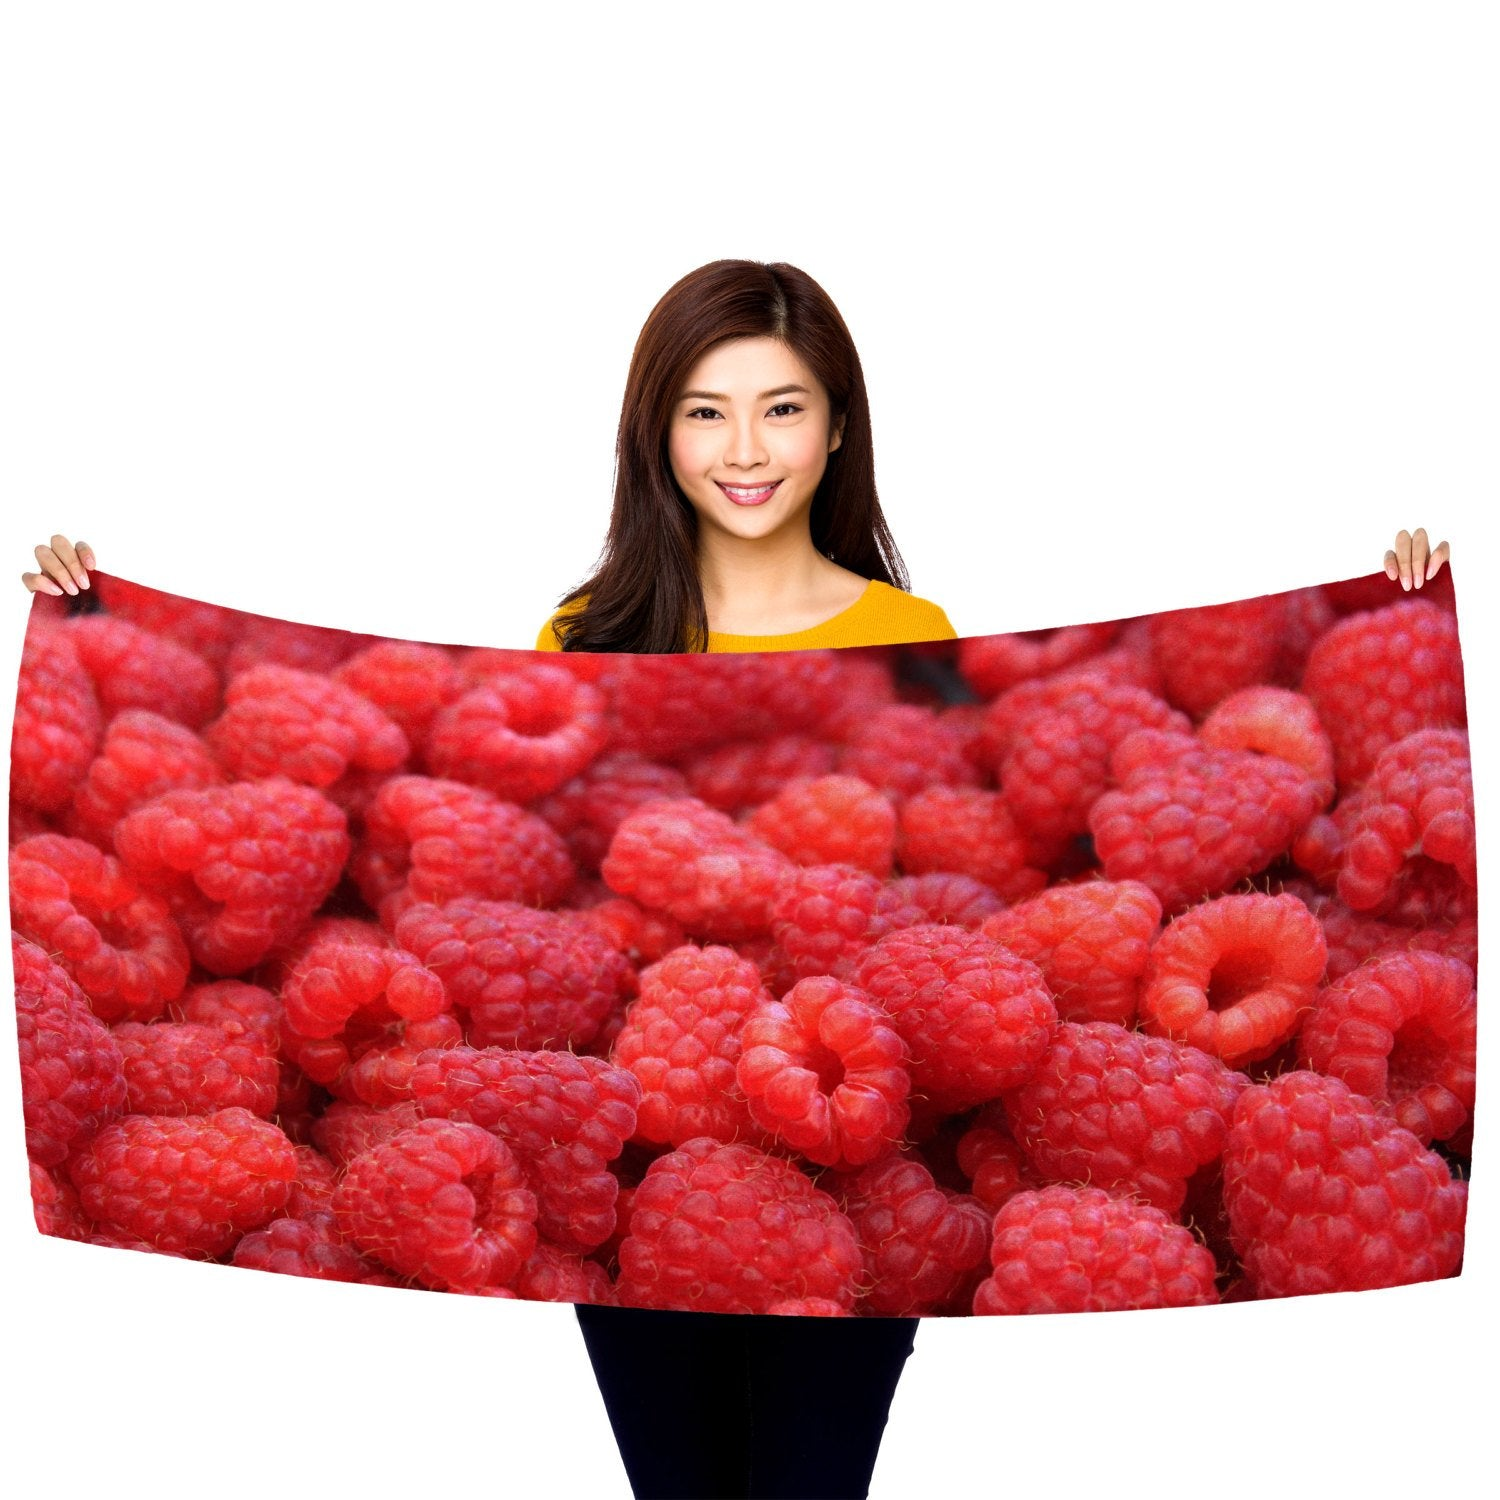 "Raspberries - 30"" x 60"" Microfiber Beach Towel"